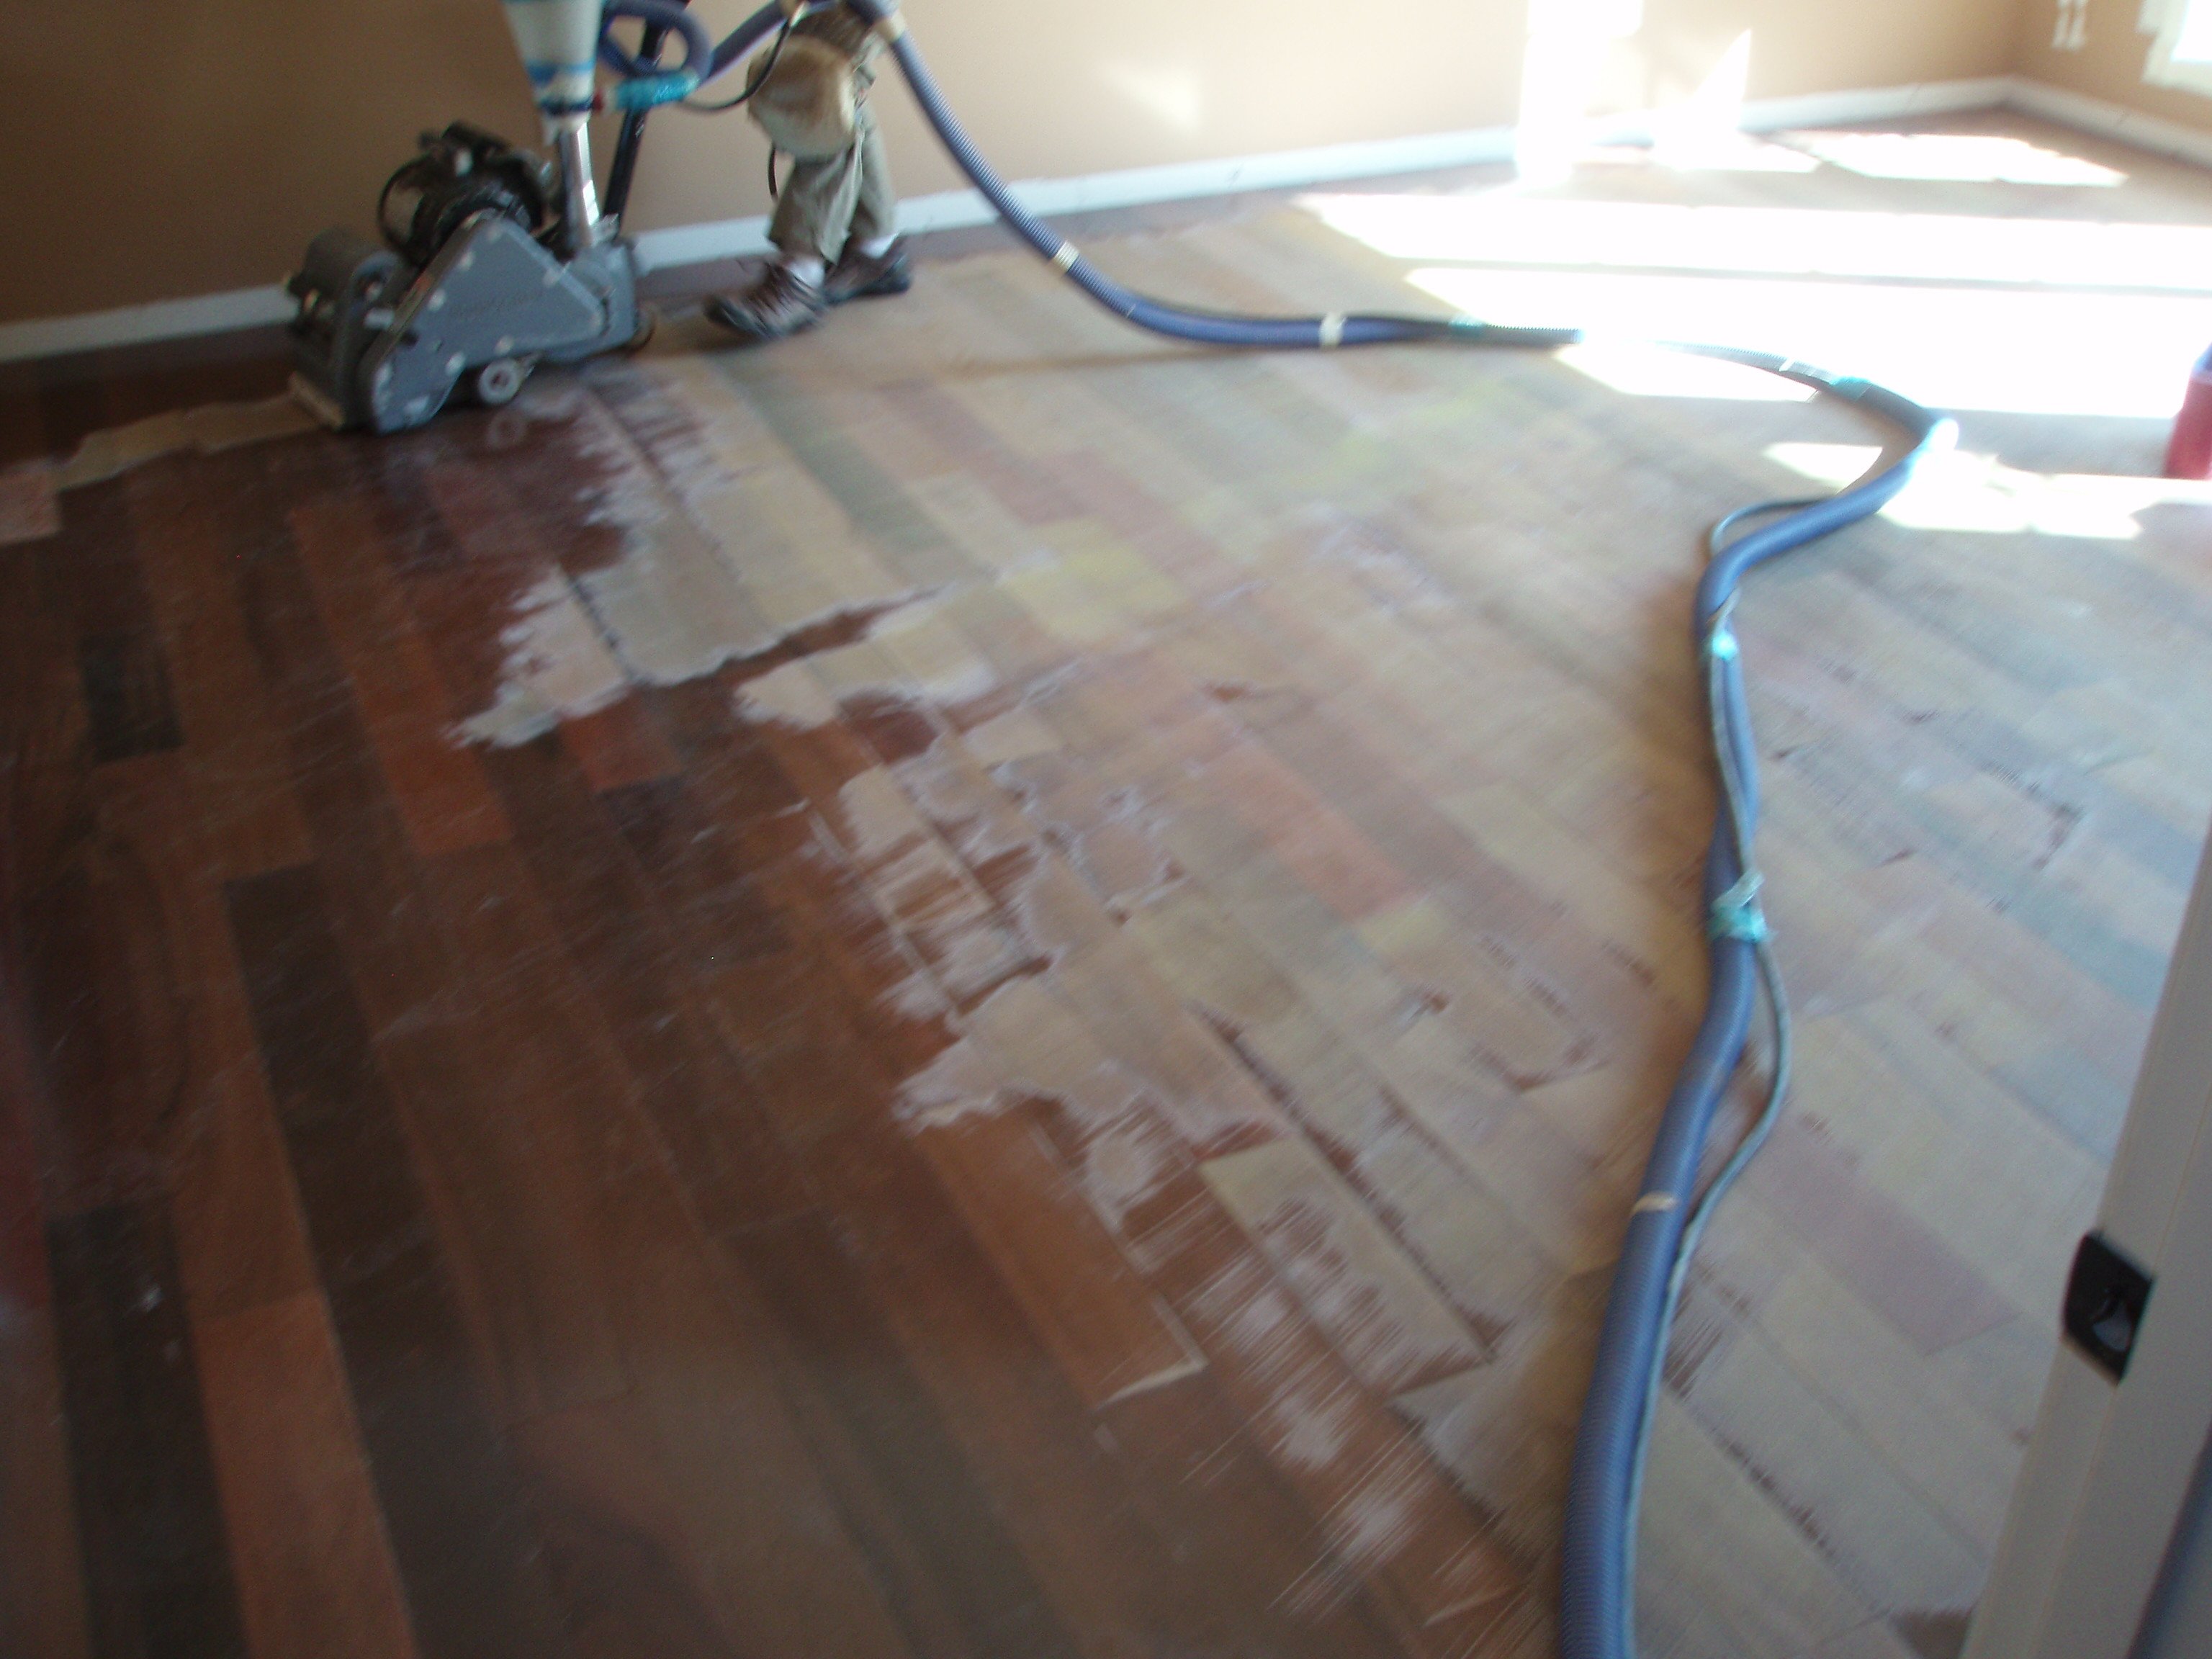 How Do You Refinish Hardwood Floors Yourself Of Can You Refinish Bamboo Floors Floor with Can You Refinish Bamboo Floors Will Refinishingod Floors Pet Stains Old without Sanding Wood with